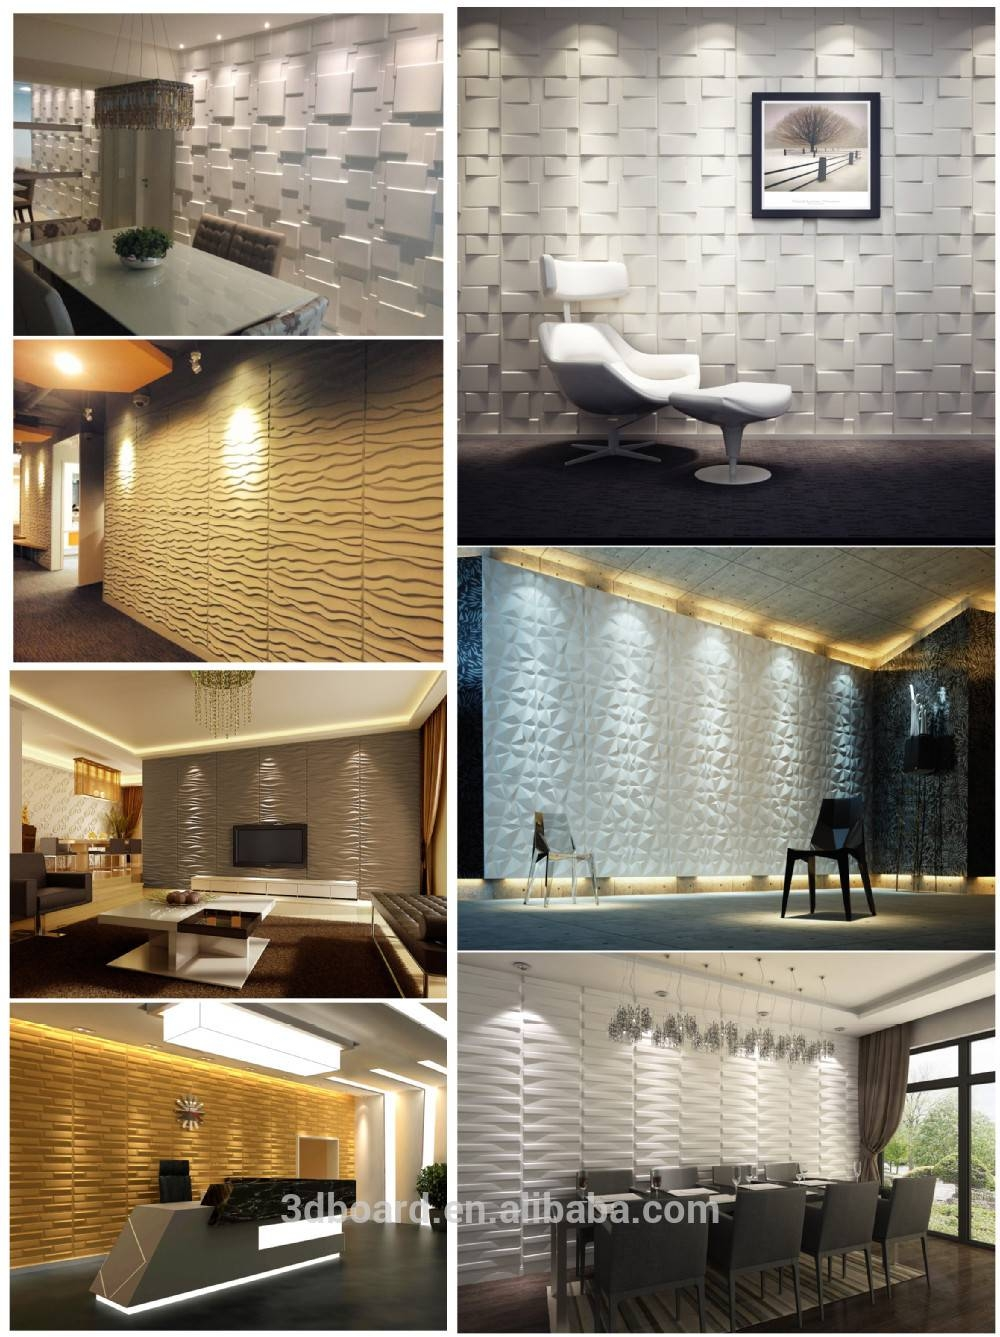 Modern Wall Art Decor Interior 3D Effect Wall Panels For Home Within Newest 3D Wall Art And Interiors (View 15 of 20)